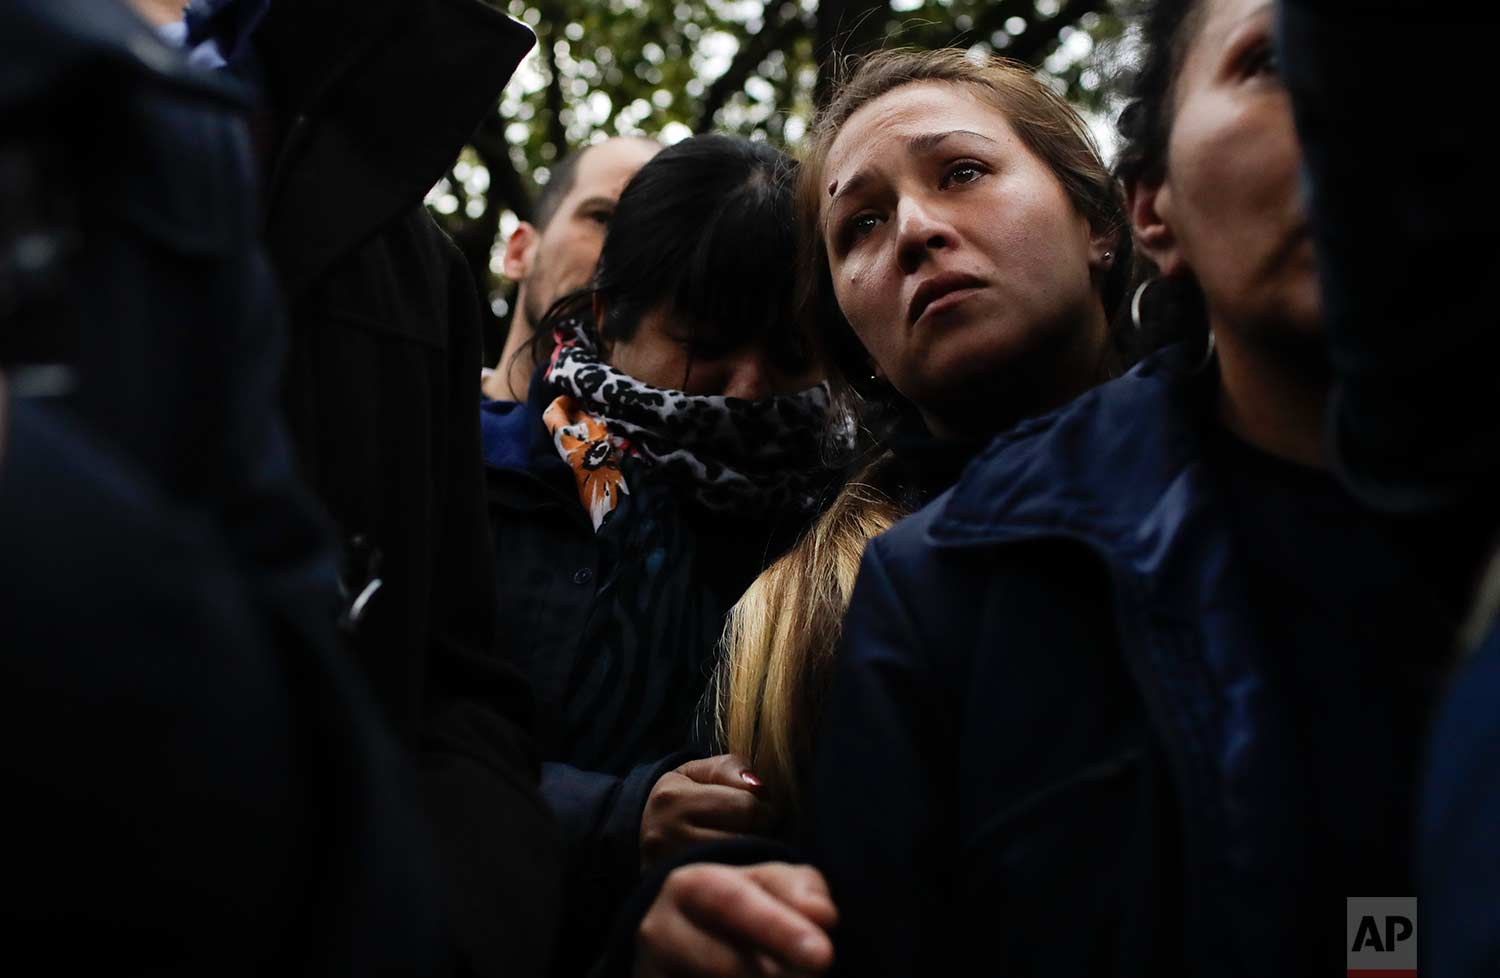 Worker Karina Lopez stands next to her team workers after clashes with police outside the PepsiCo plant on the outskirts of Buenos Aires, Argentina, Thursday, July 13, 2017. (AP Photo/Natacha Pisarenko)